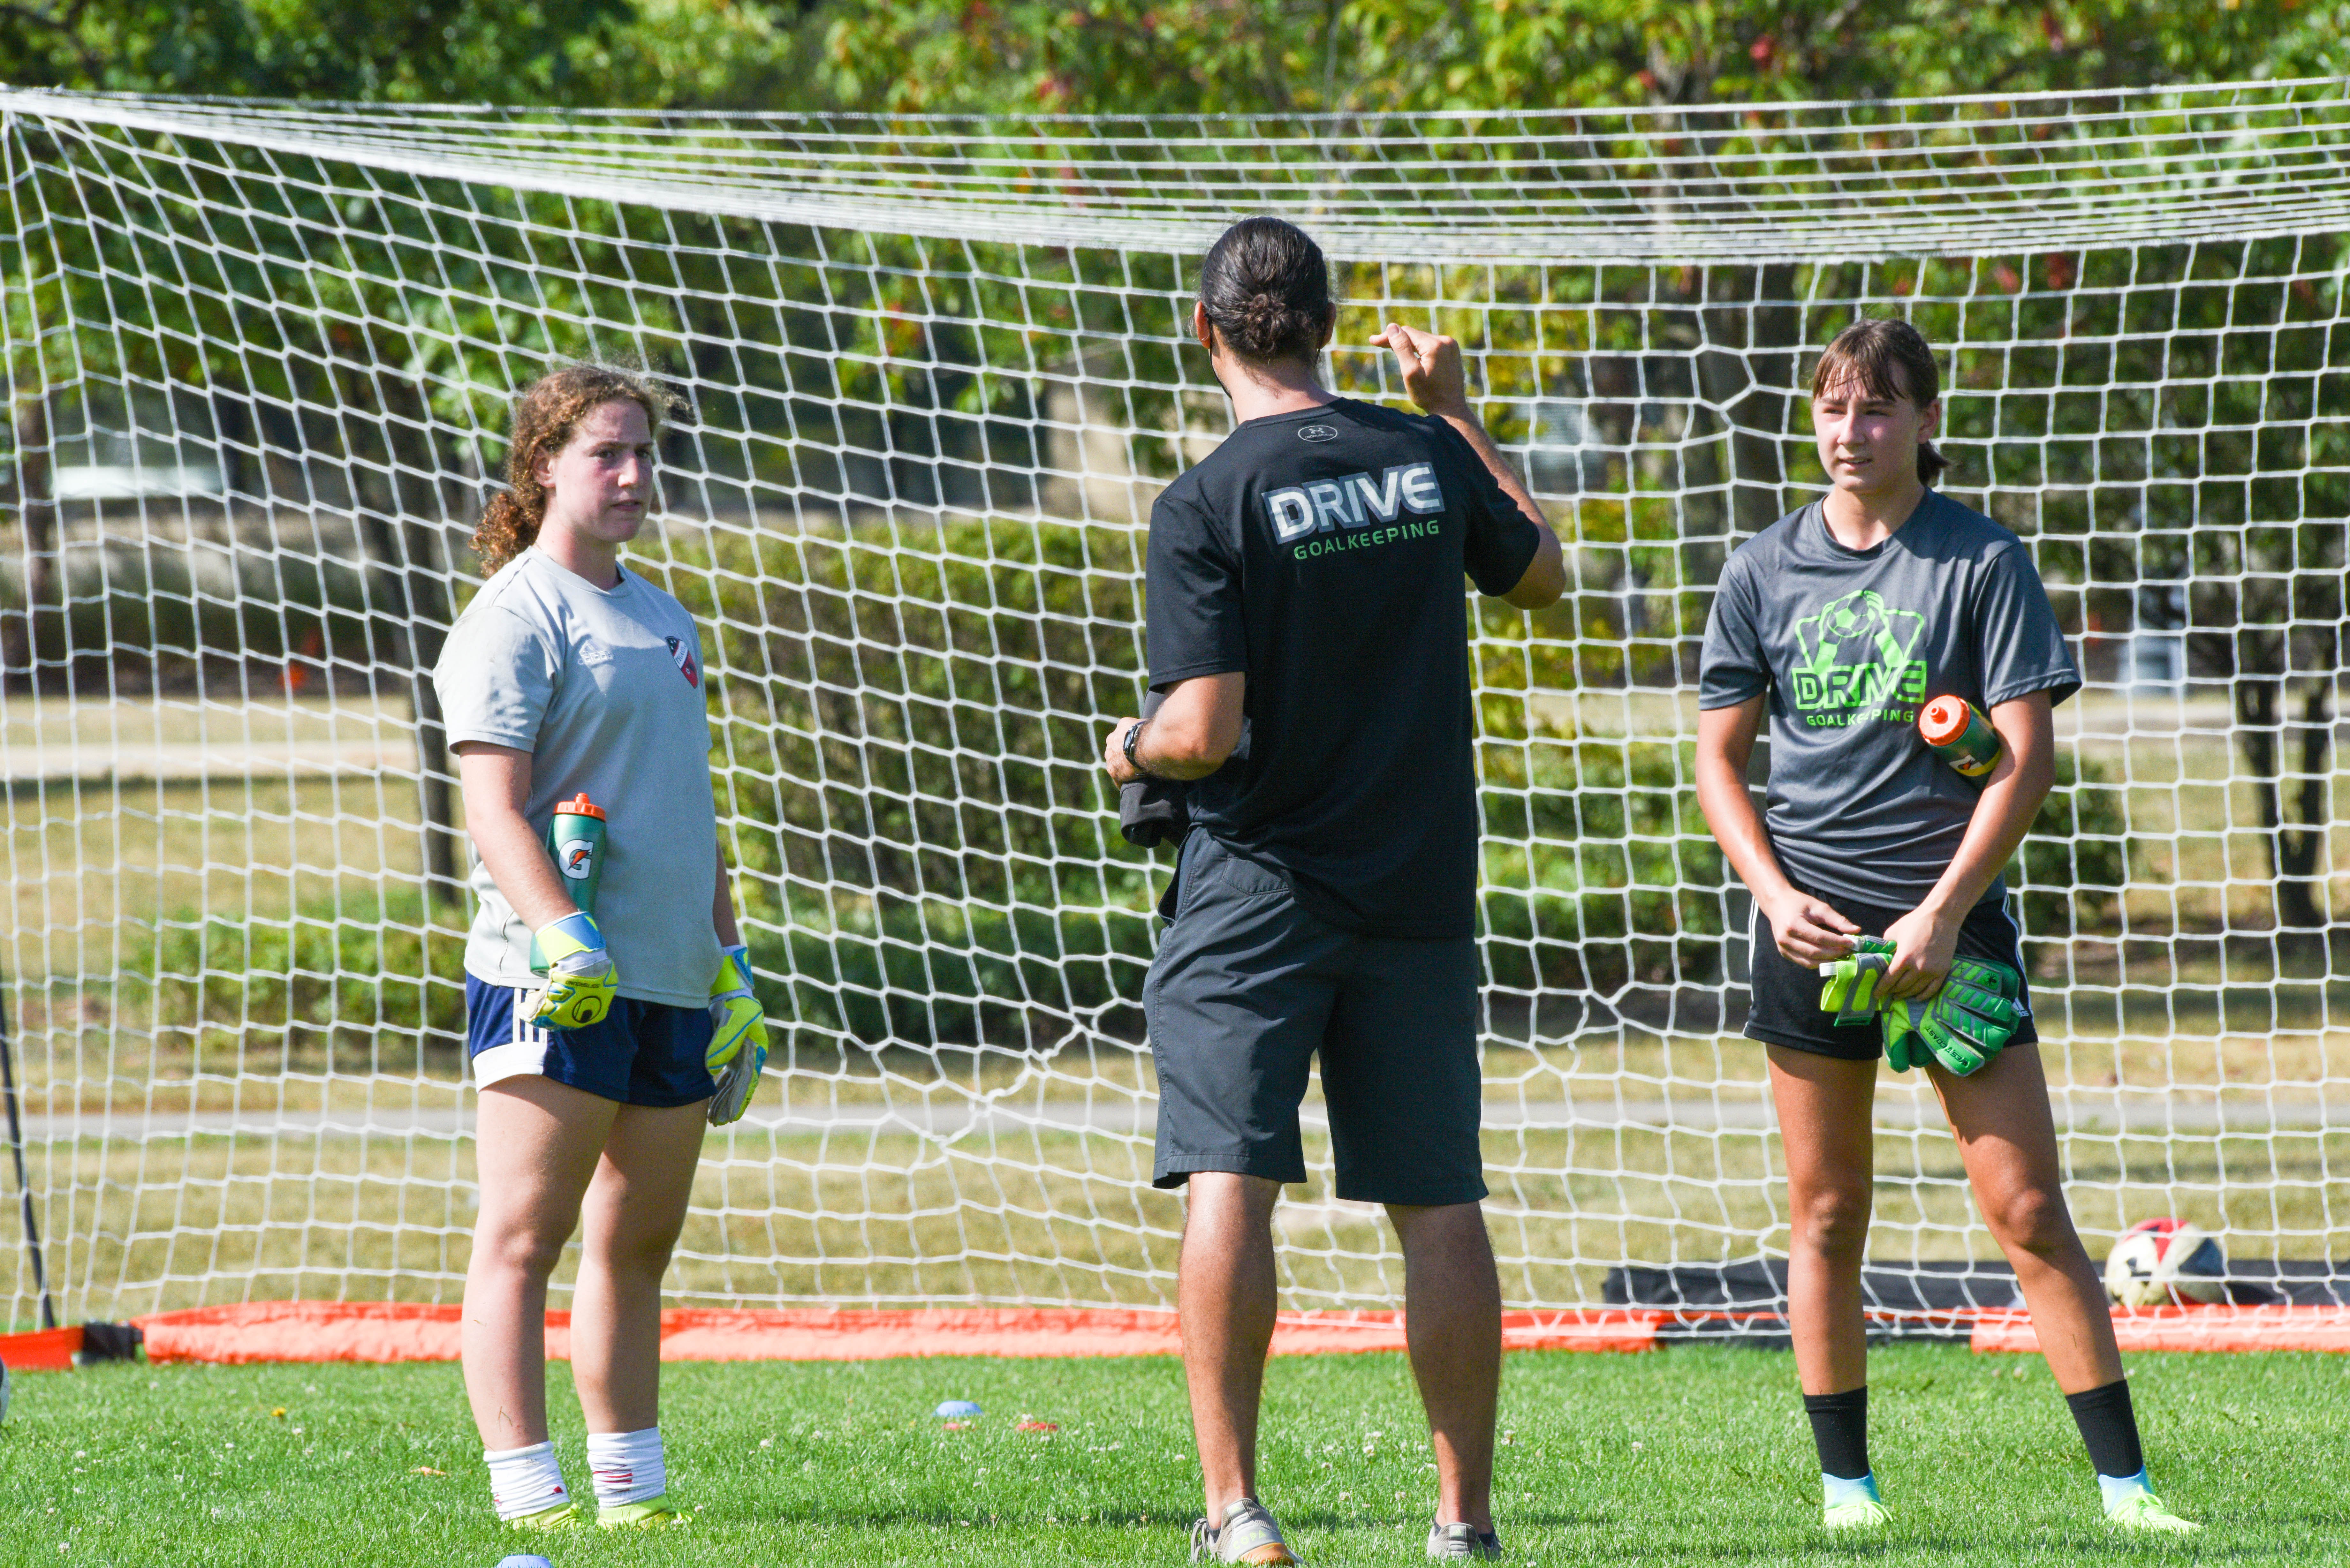 200822_SS_Drive Goalkeeping Camp-114-1